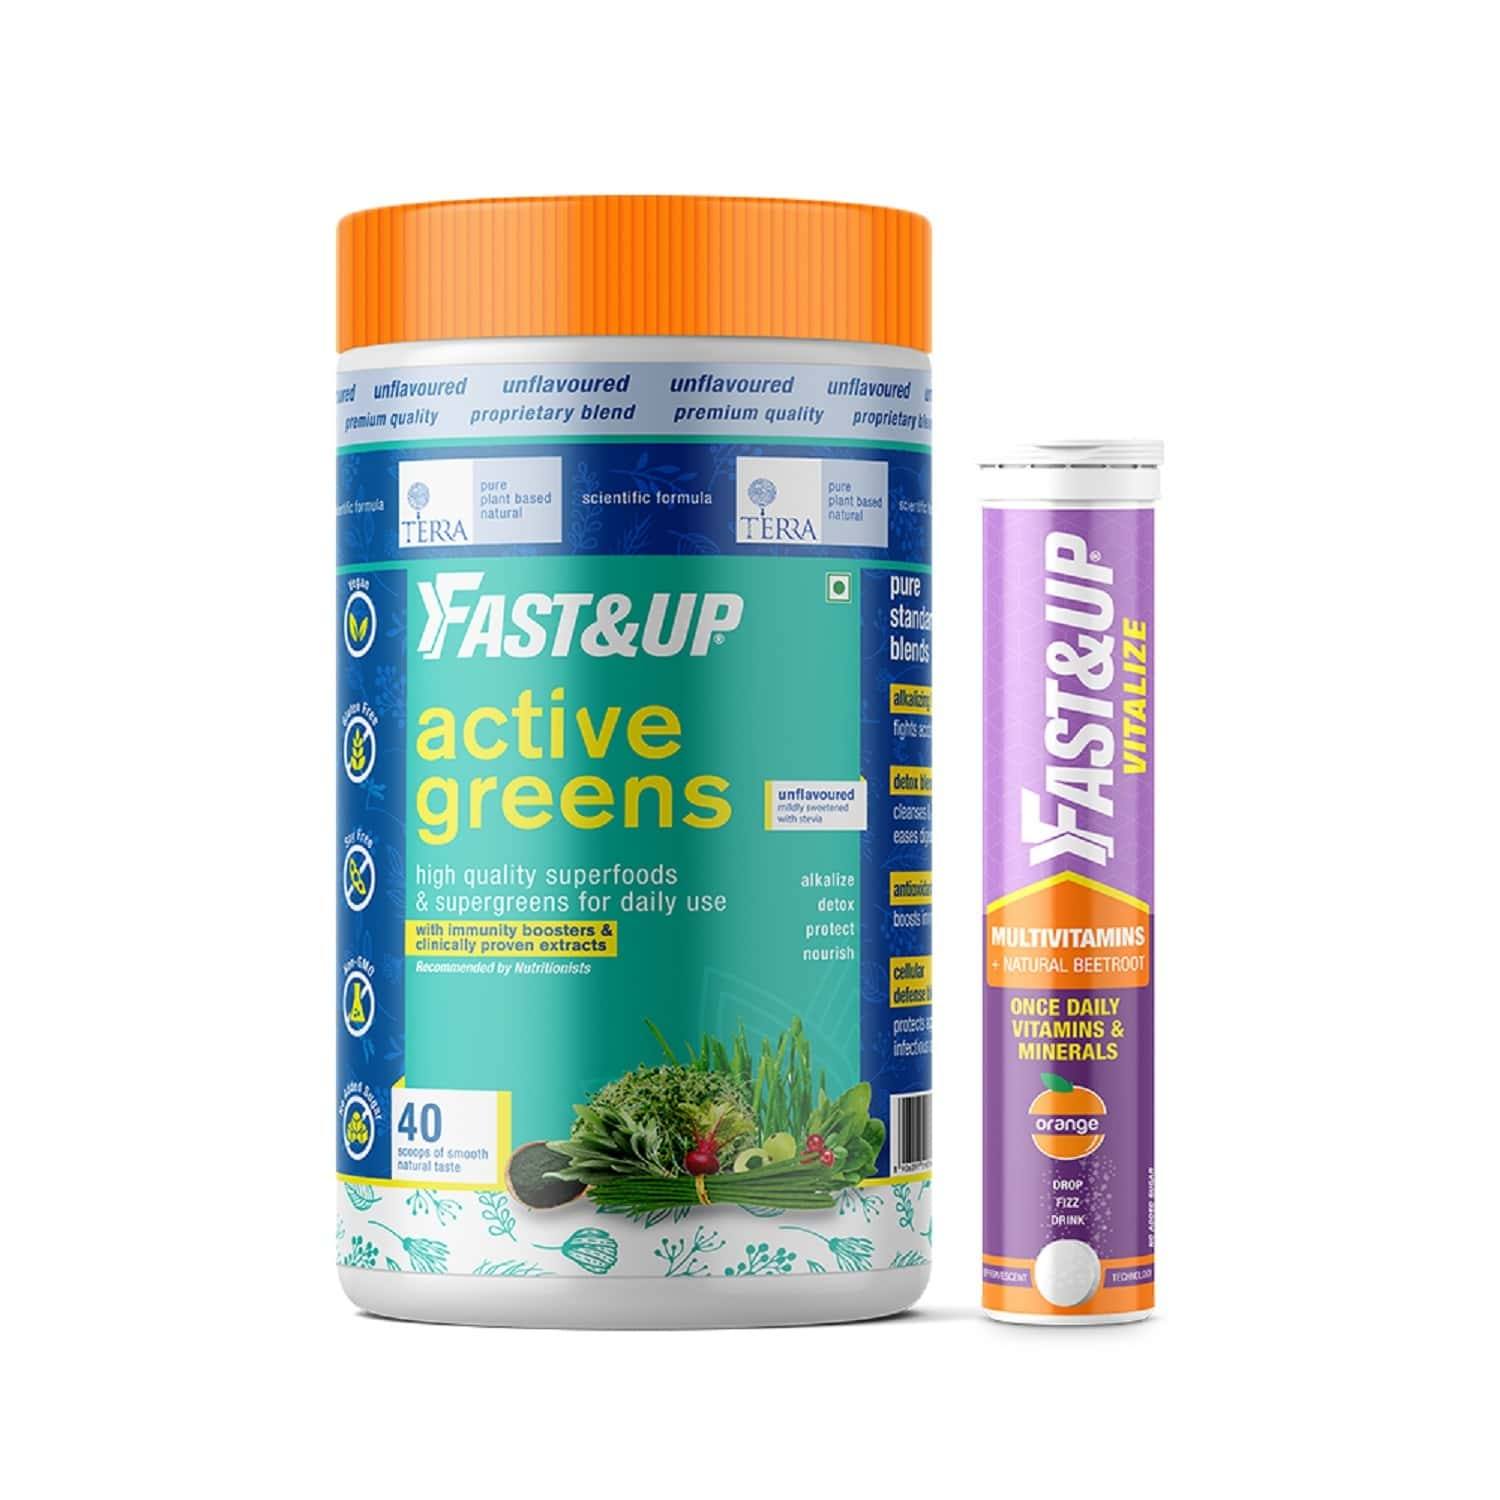 Fast&up Superfoods With Multivitamins - Active Greens 280g & Vitalize 20 Tablets